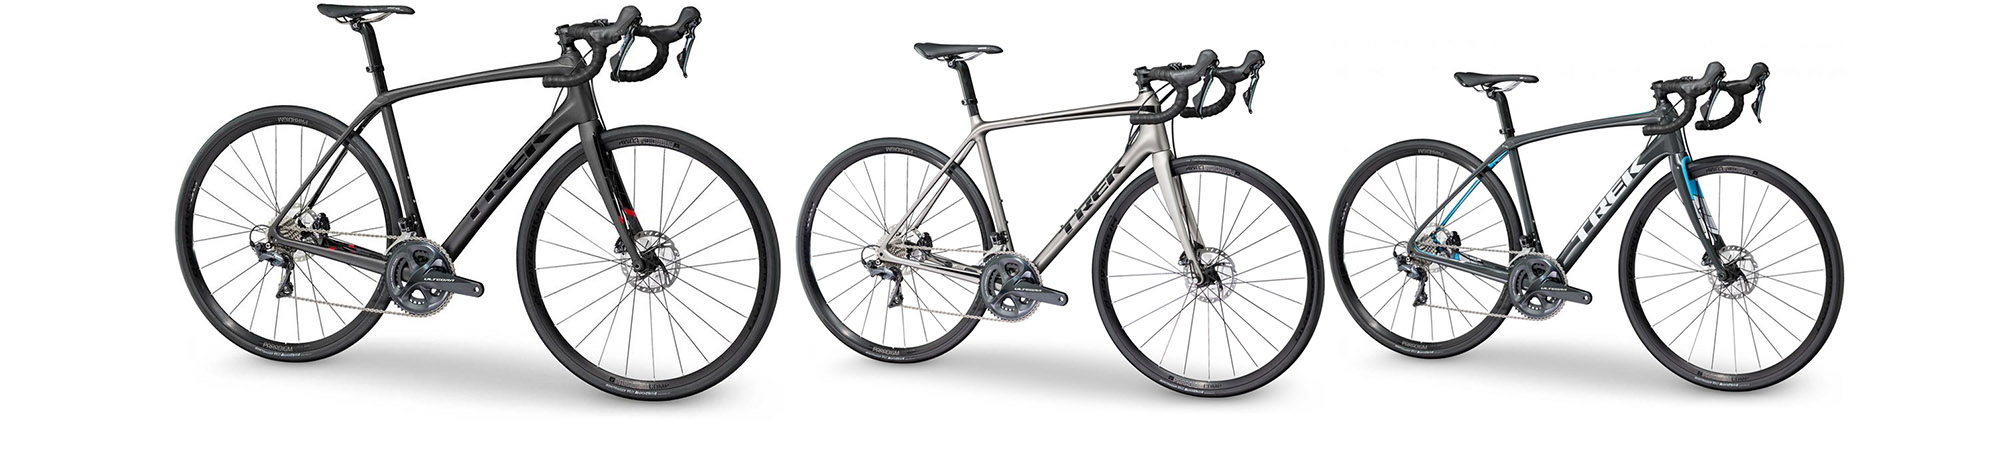 Trek demo bikes will be available to try and ride